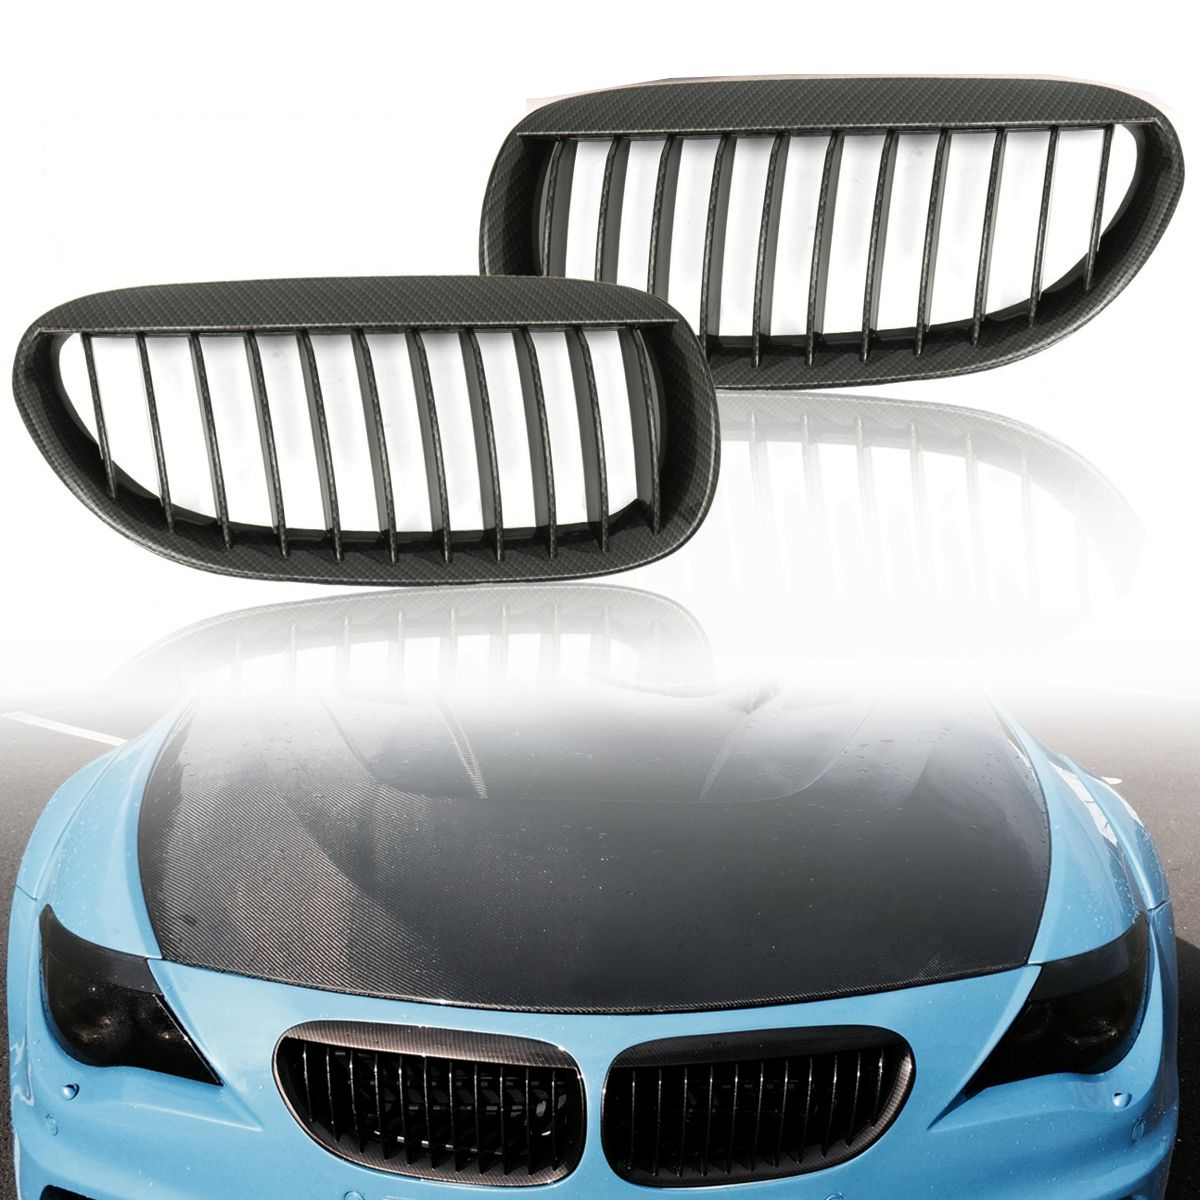 Pair Carbon Grain Kidney Grilles Front Right Left For BMW E63 E64 6 Series 2 Door Grille 2003 2004 2005 2006 2007 2008 2009 2010 sexy swimsuit swimwear women 2017 brazilian bikini set push up bathing suit biquini maillot de bain femme beach wear swim suit